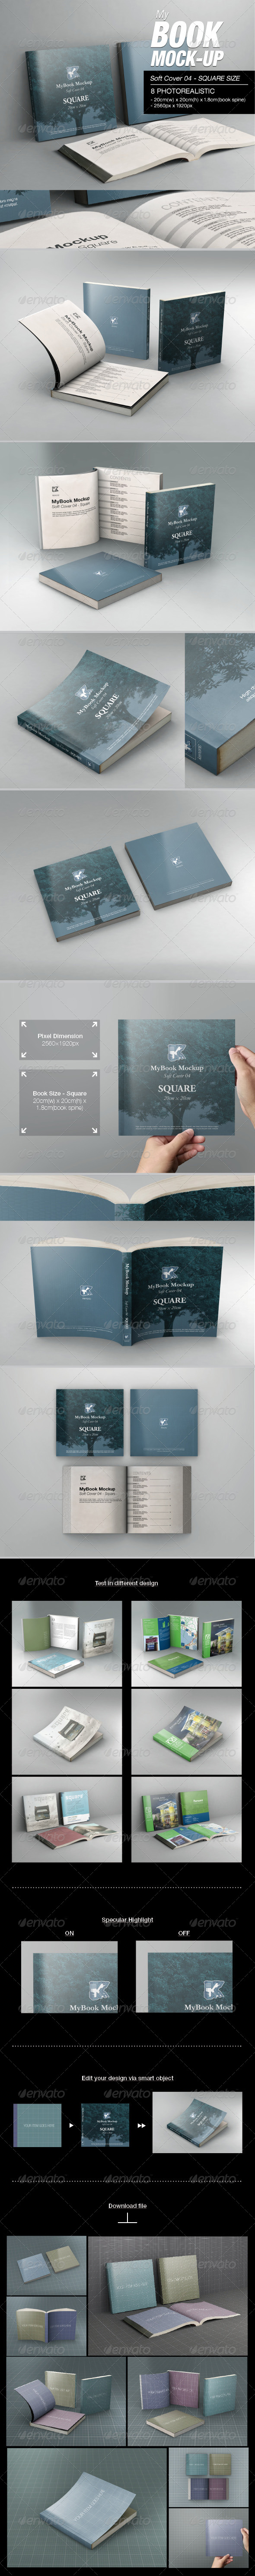 GraphicRiver MyBook Mock-up Soft Cover 04 7445894